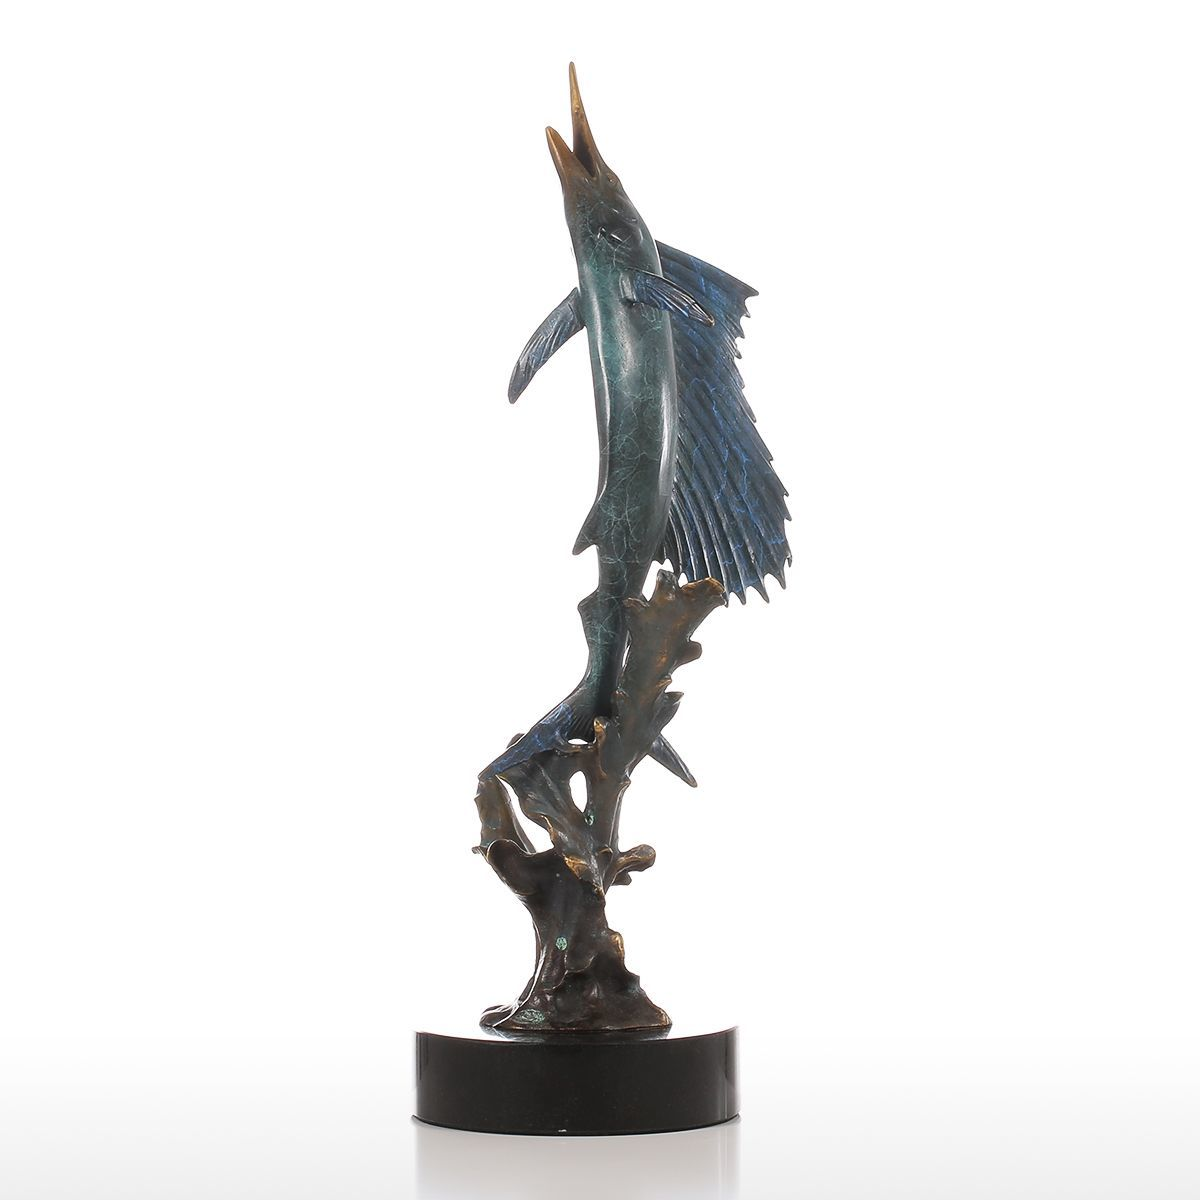 Tooarts Salifish Out of Water Figurine Handmade Bronze Figurine Europe Art Home Decor Craft Gift For Home